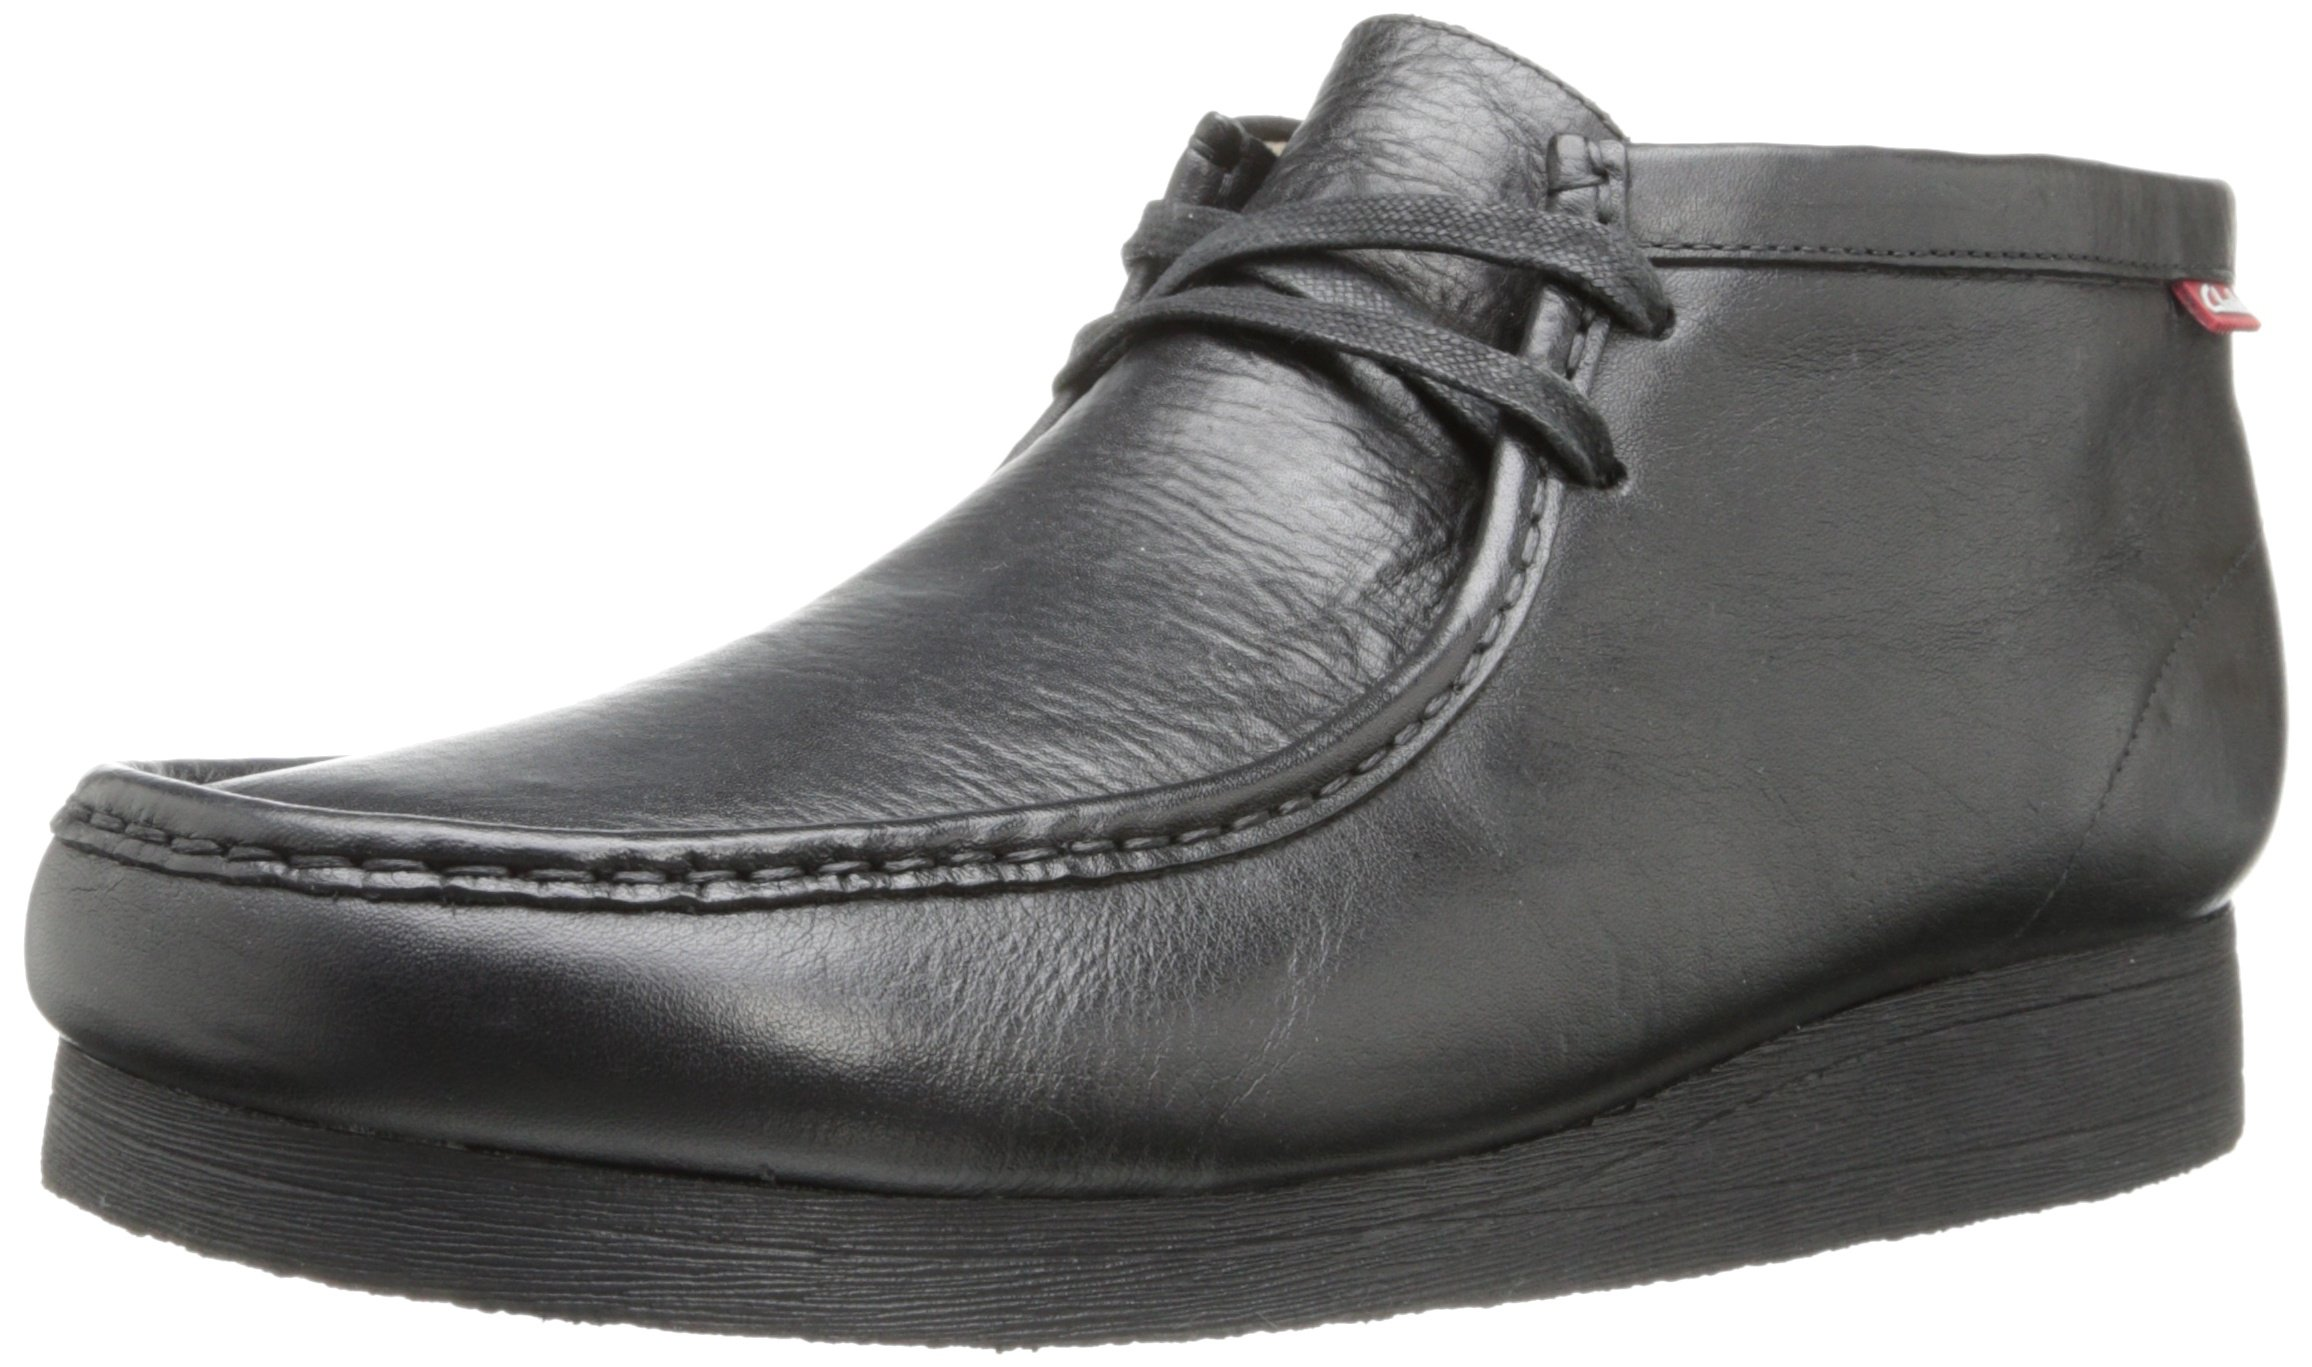 CLARKS Men's Stinson Hi Chukka Boot,Black Leather,9 M US